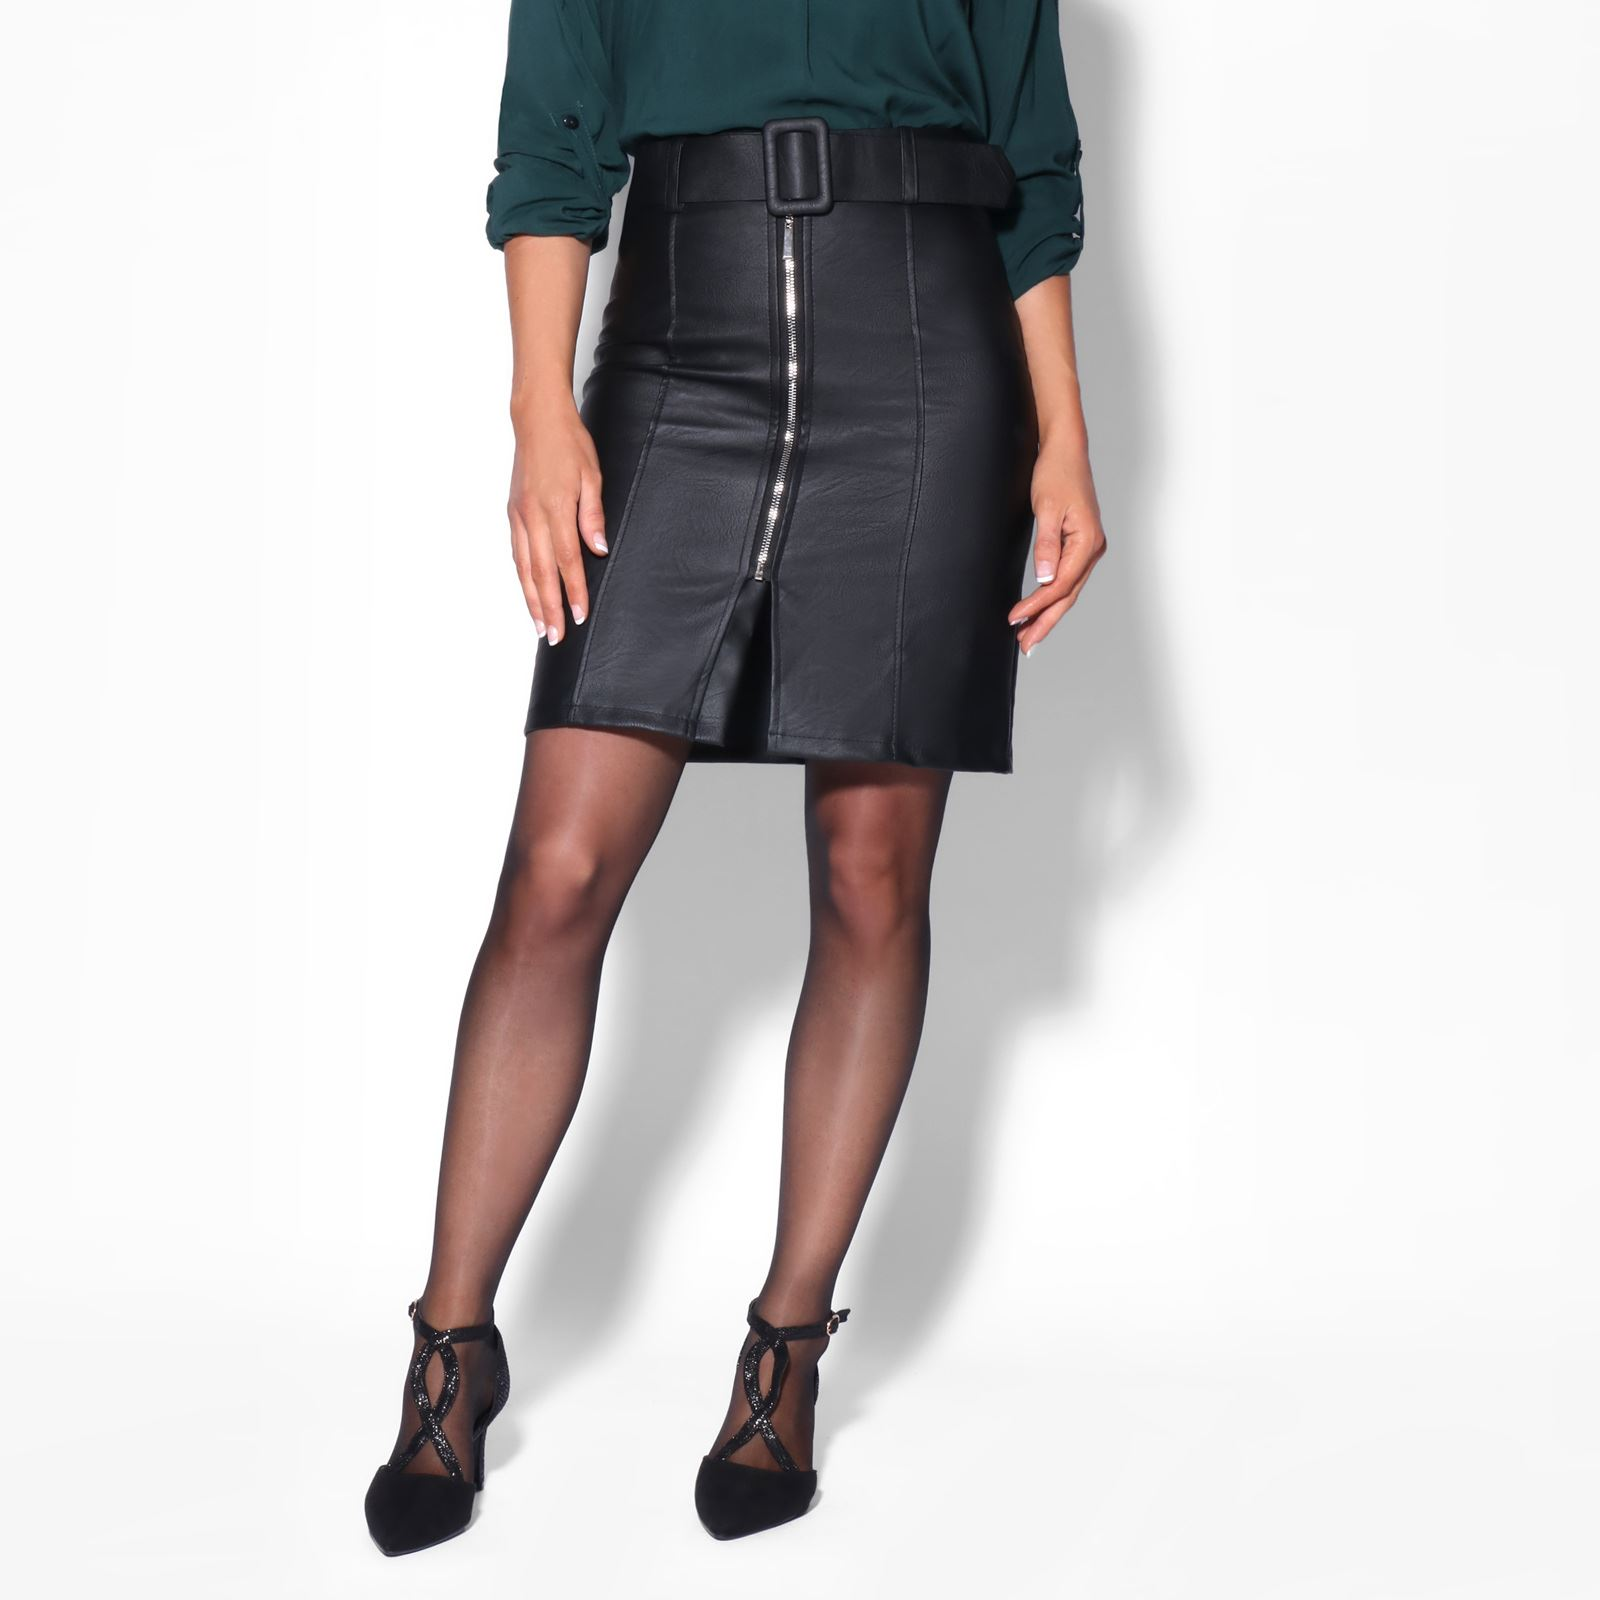 top-rated official sleek 2019 discount sale Details about Women Ladies PVC Leather High Waist Zip Pencil Straight  Bodycon Skirt Work Party